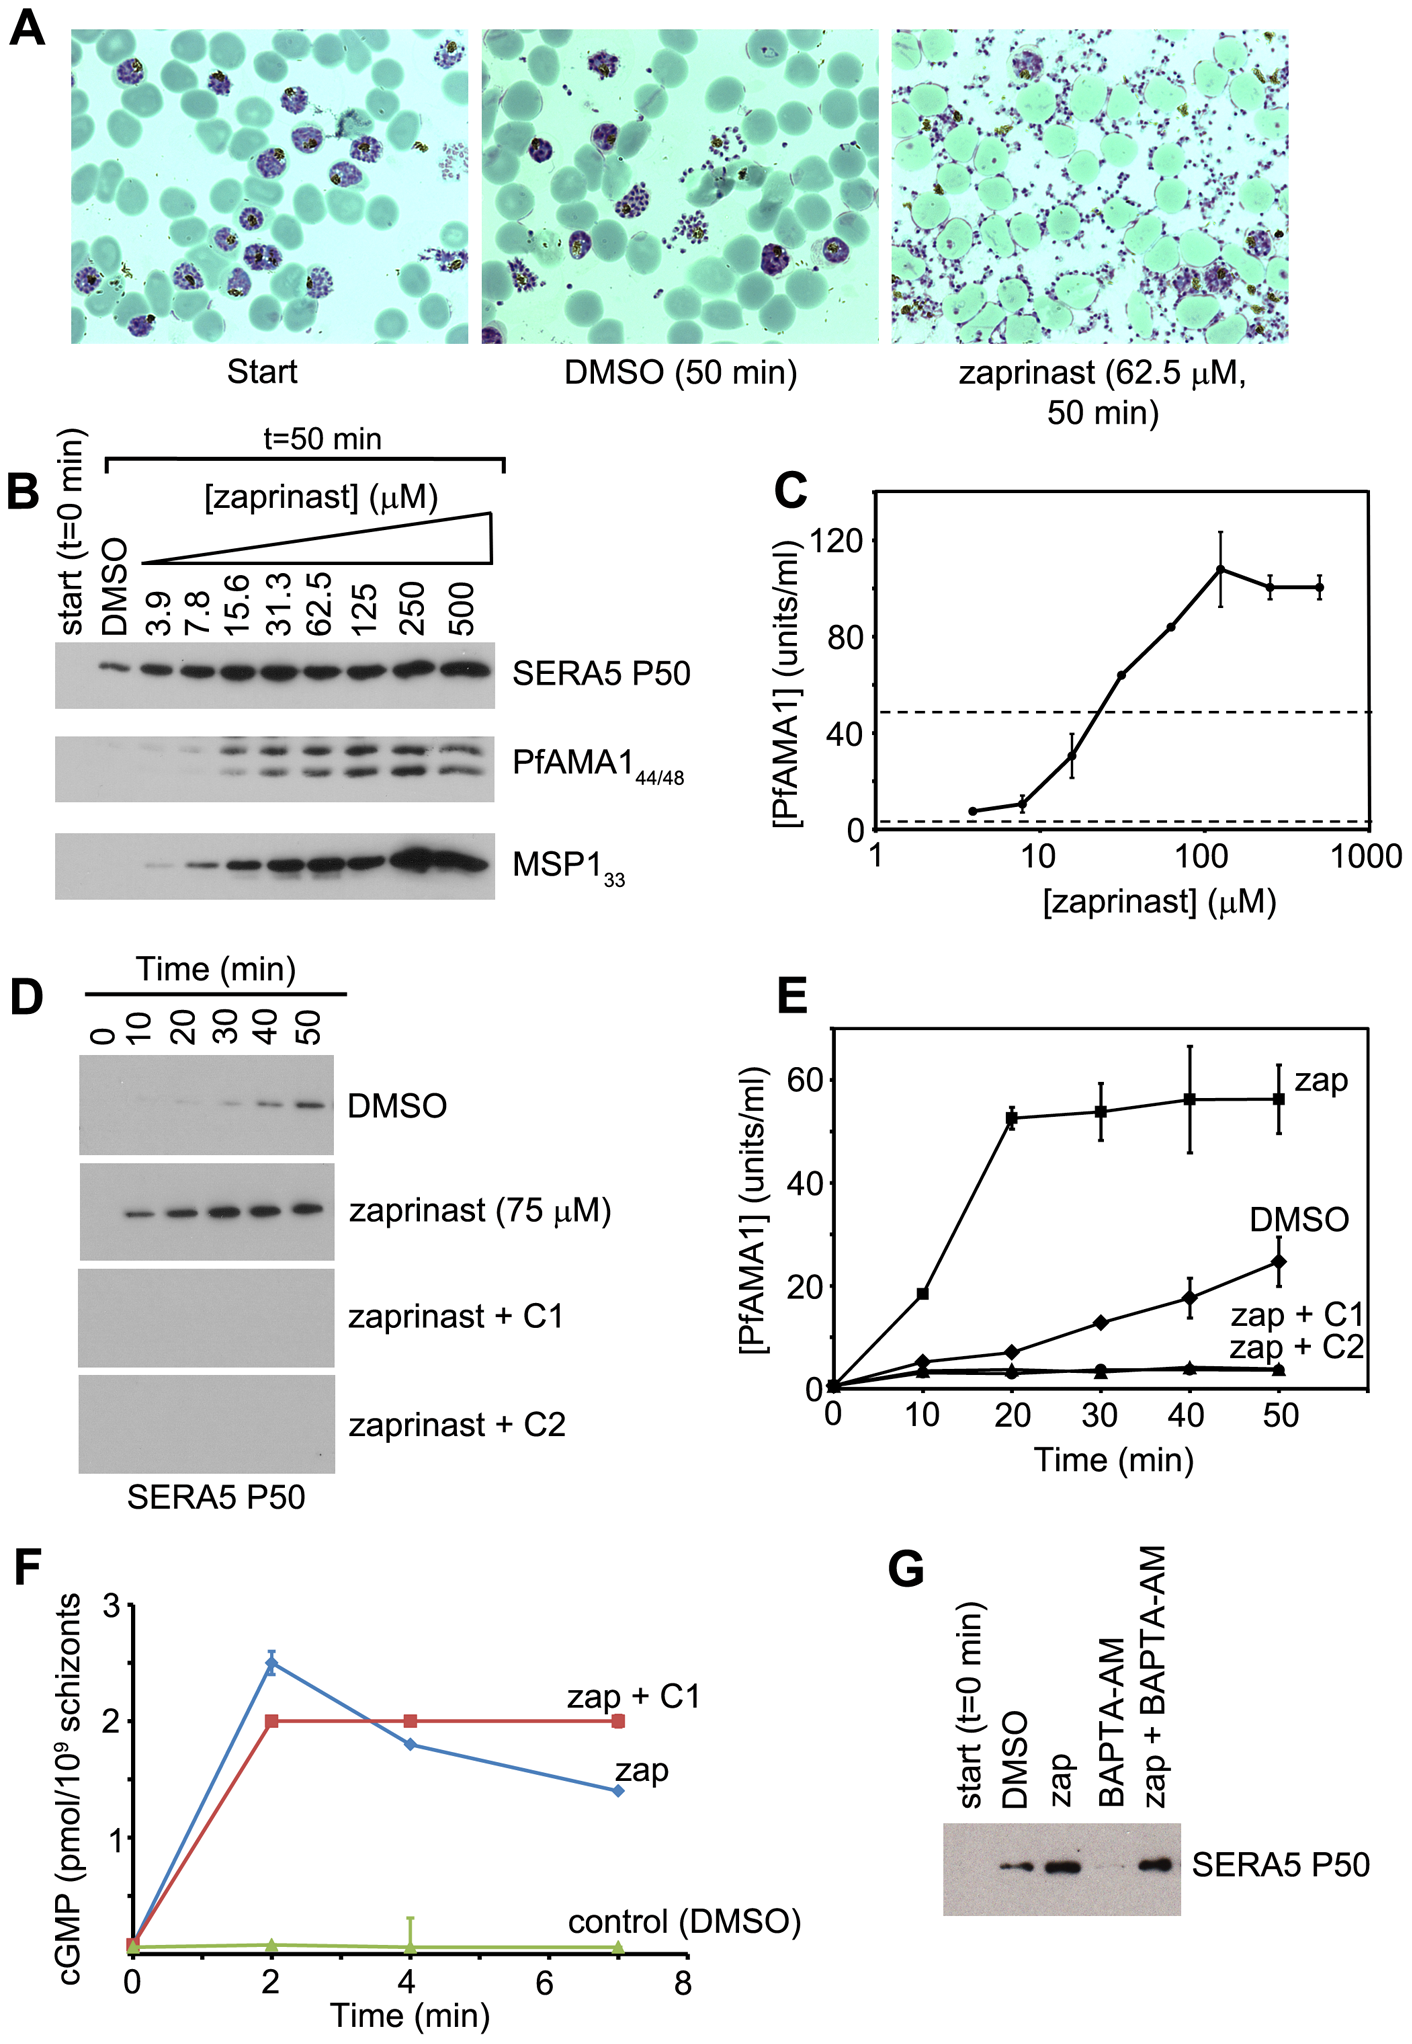 The phosphodiesterase inhibitor zaprinast induces premature egress in a cGMP-dependent manner.